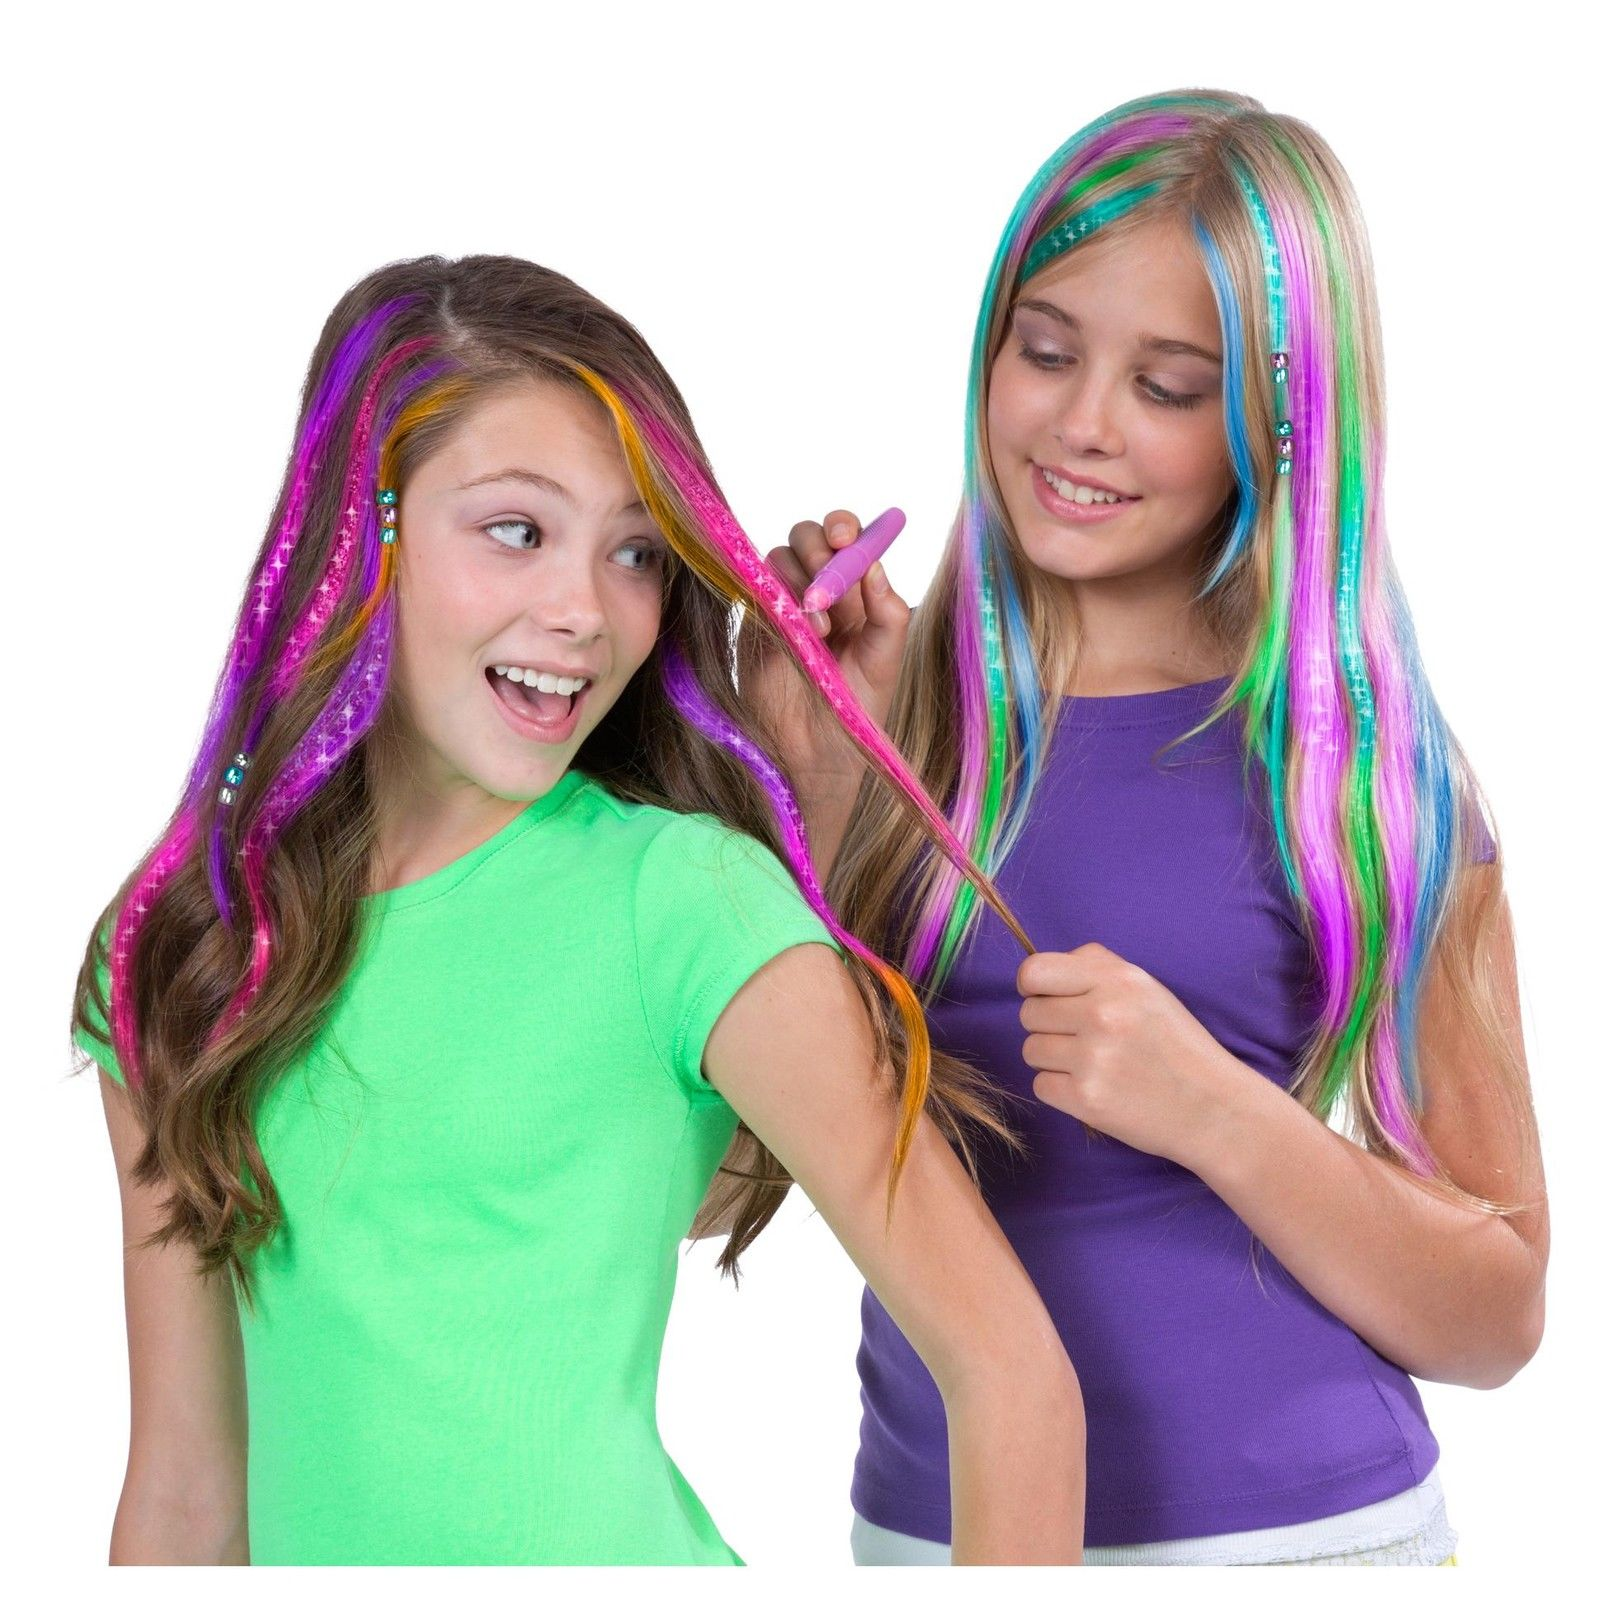 Kids Deluxe Hair Chalk Salon - Hair Color And Accessories – latest kids